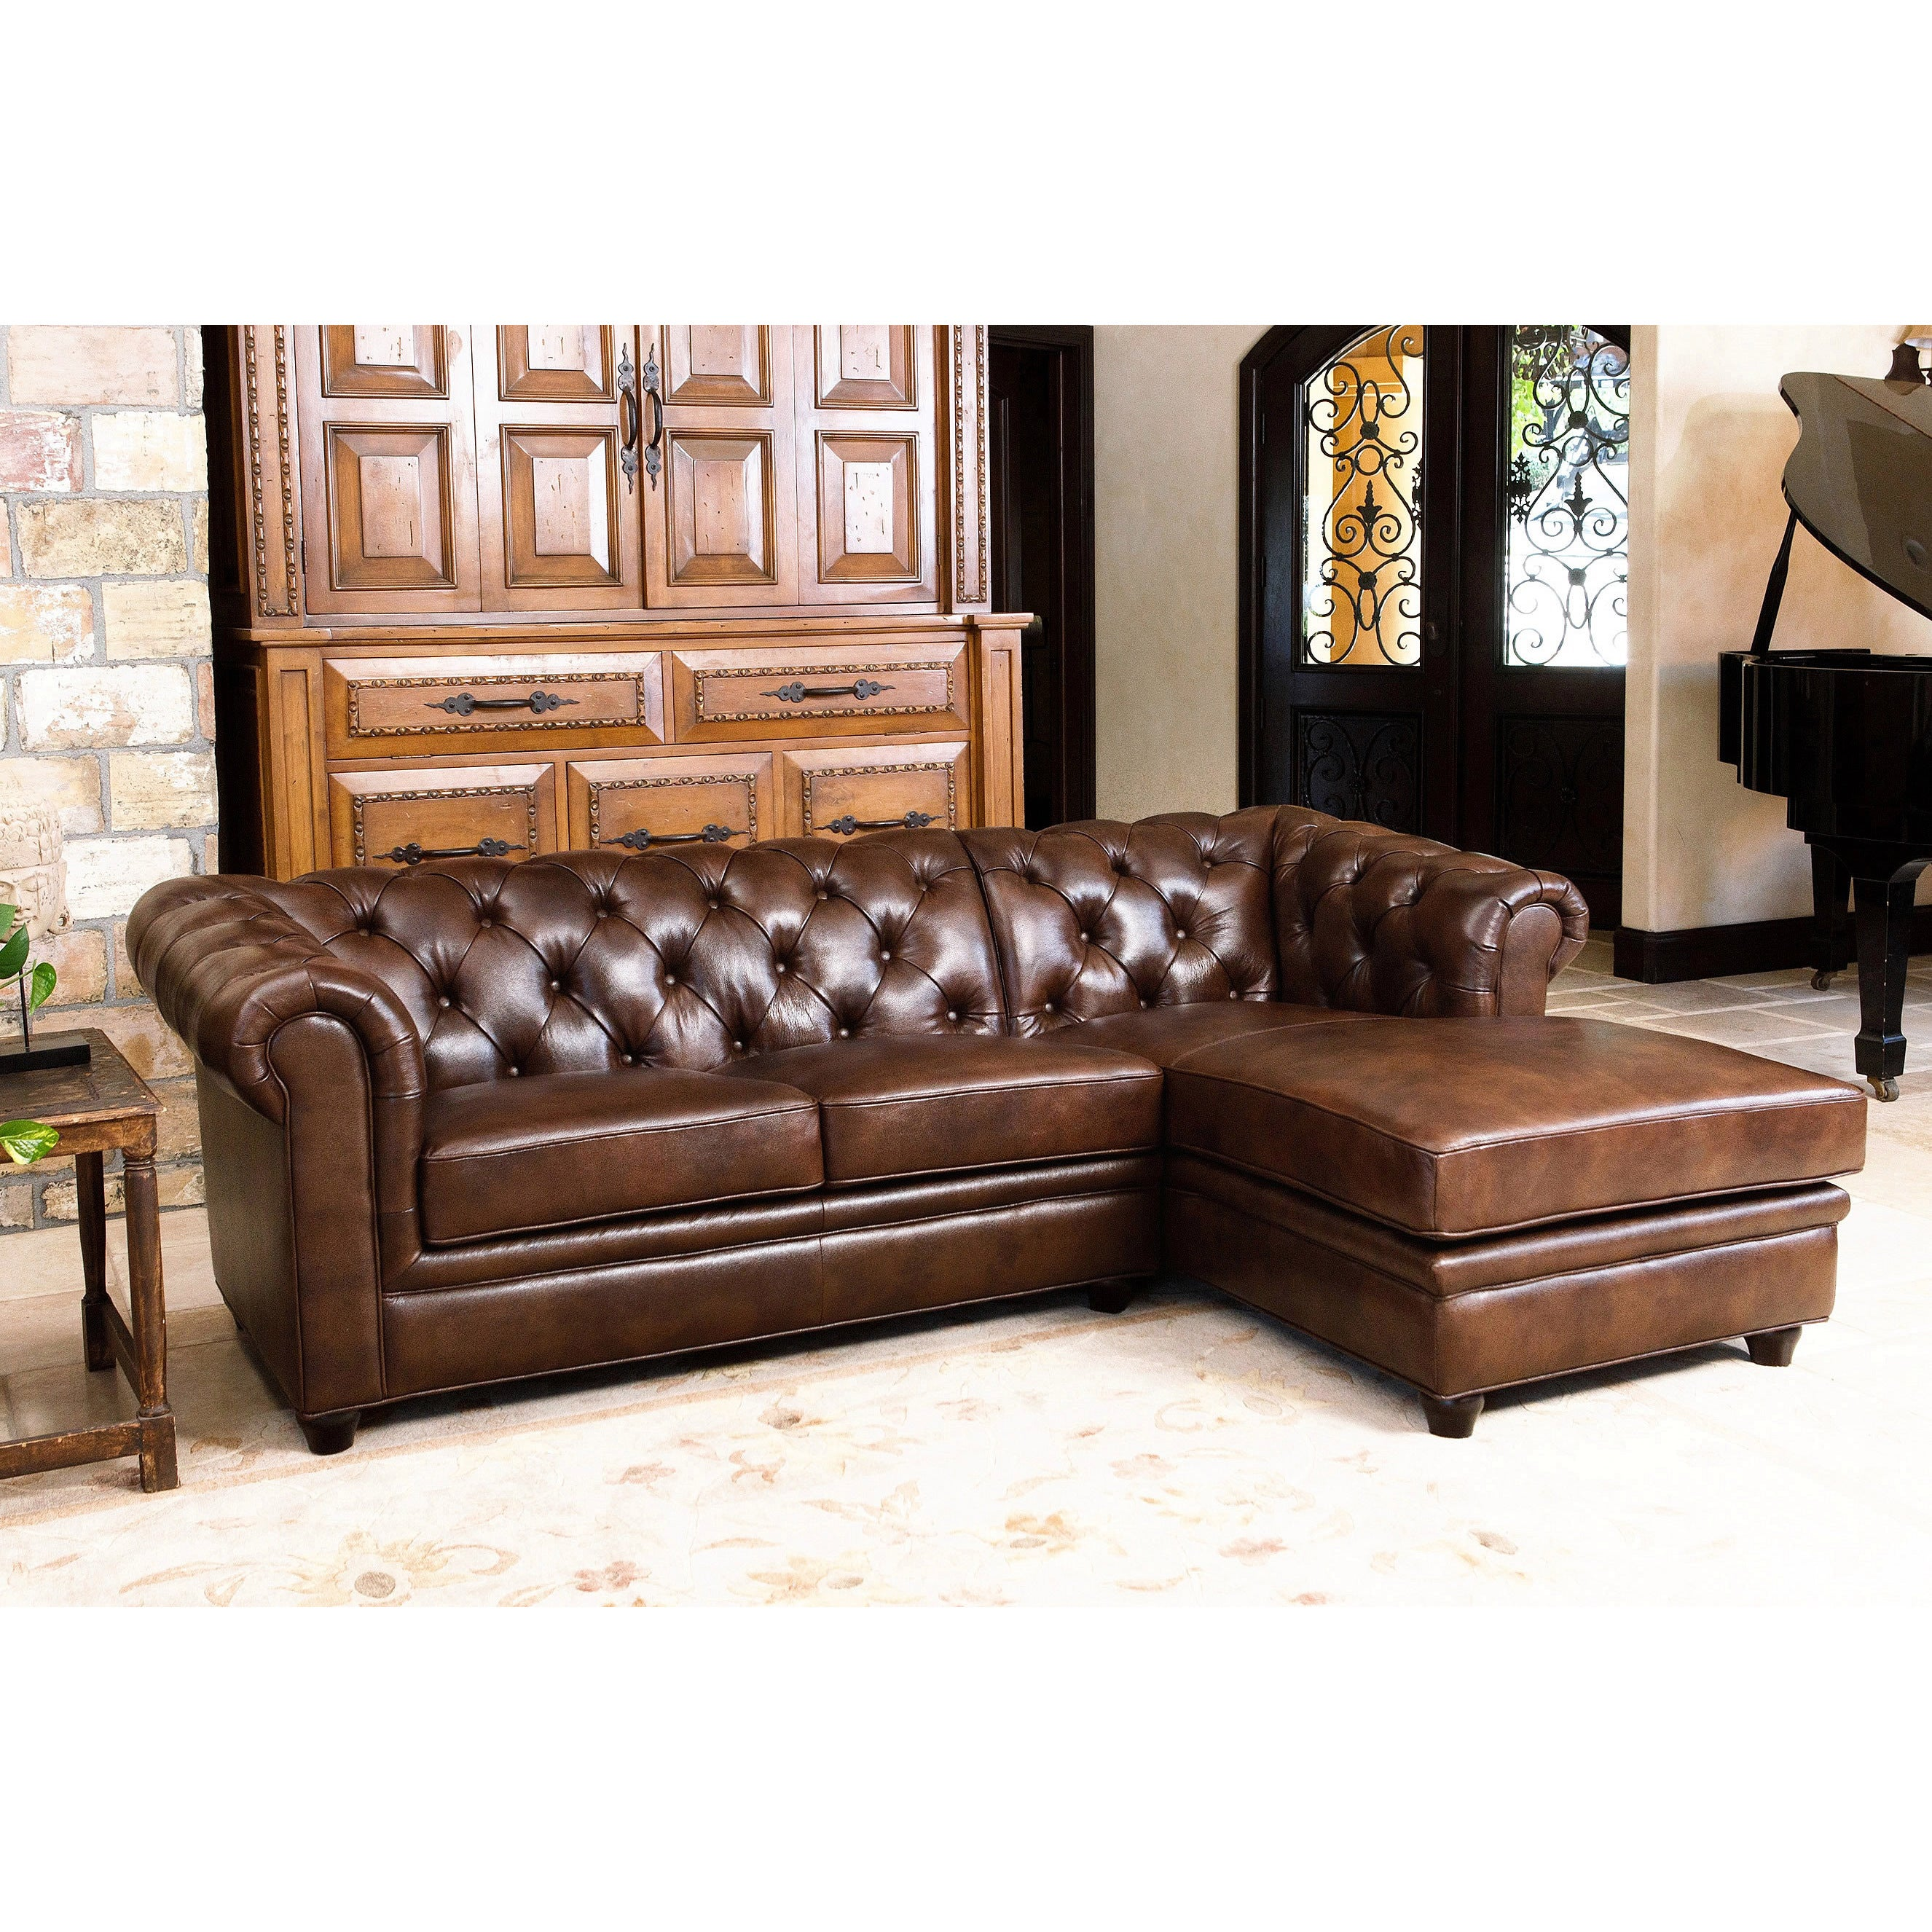 Shop Black Friday Deals On Abbyson Tuscan Tufted Top Grain Leather Chaise Sectional Overstock 11595878